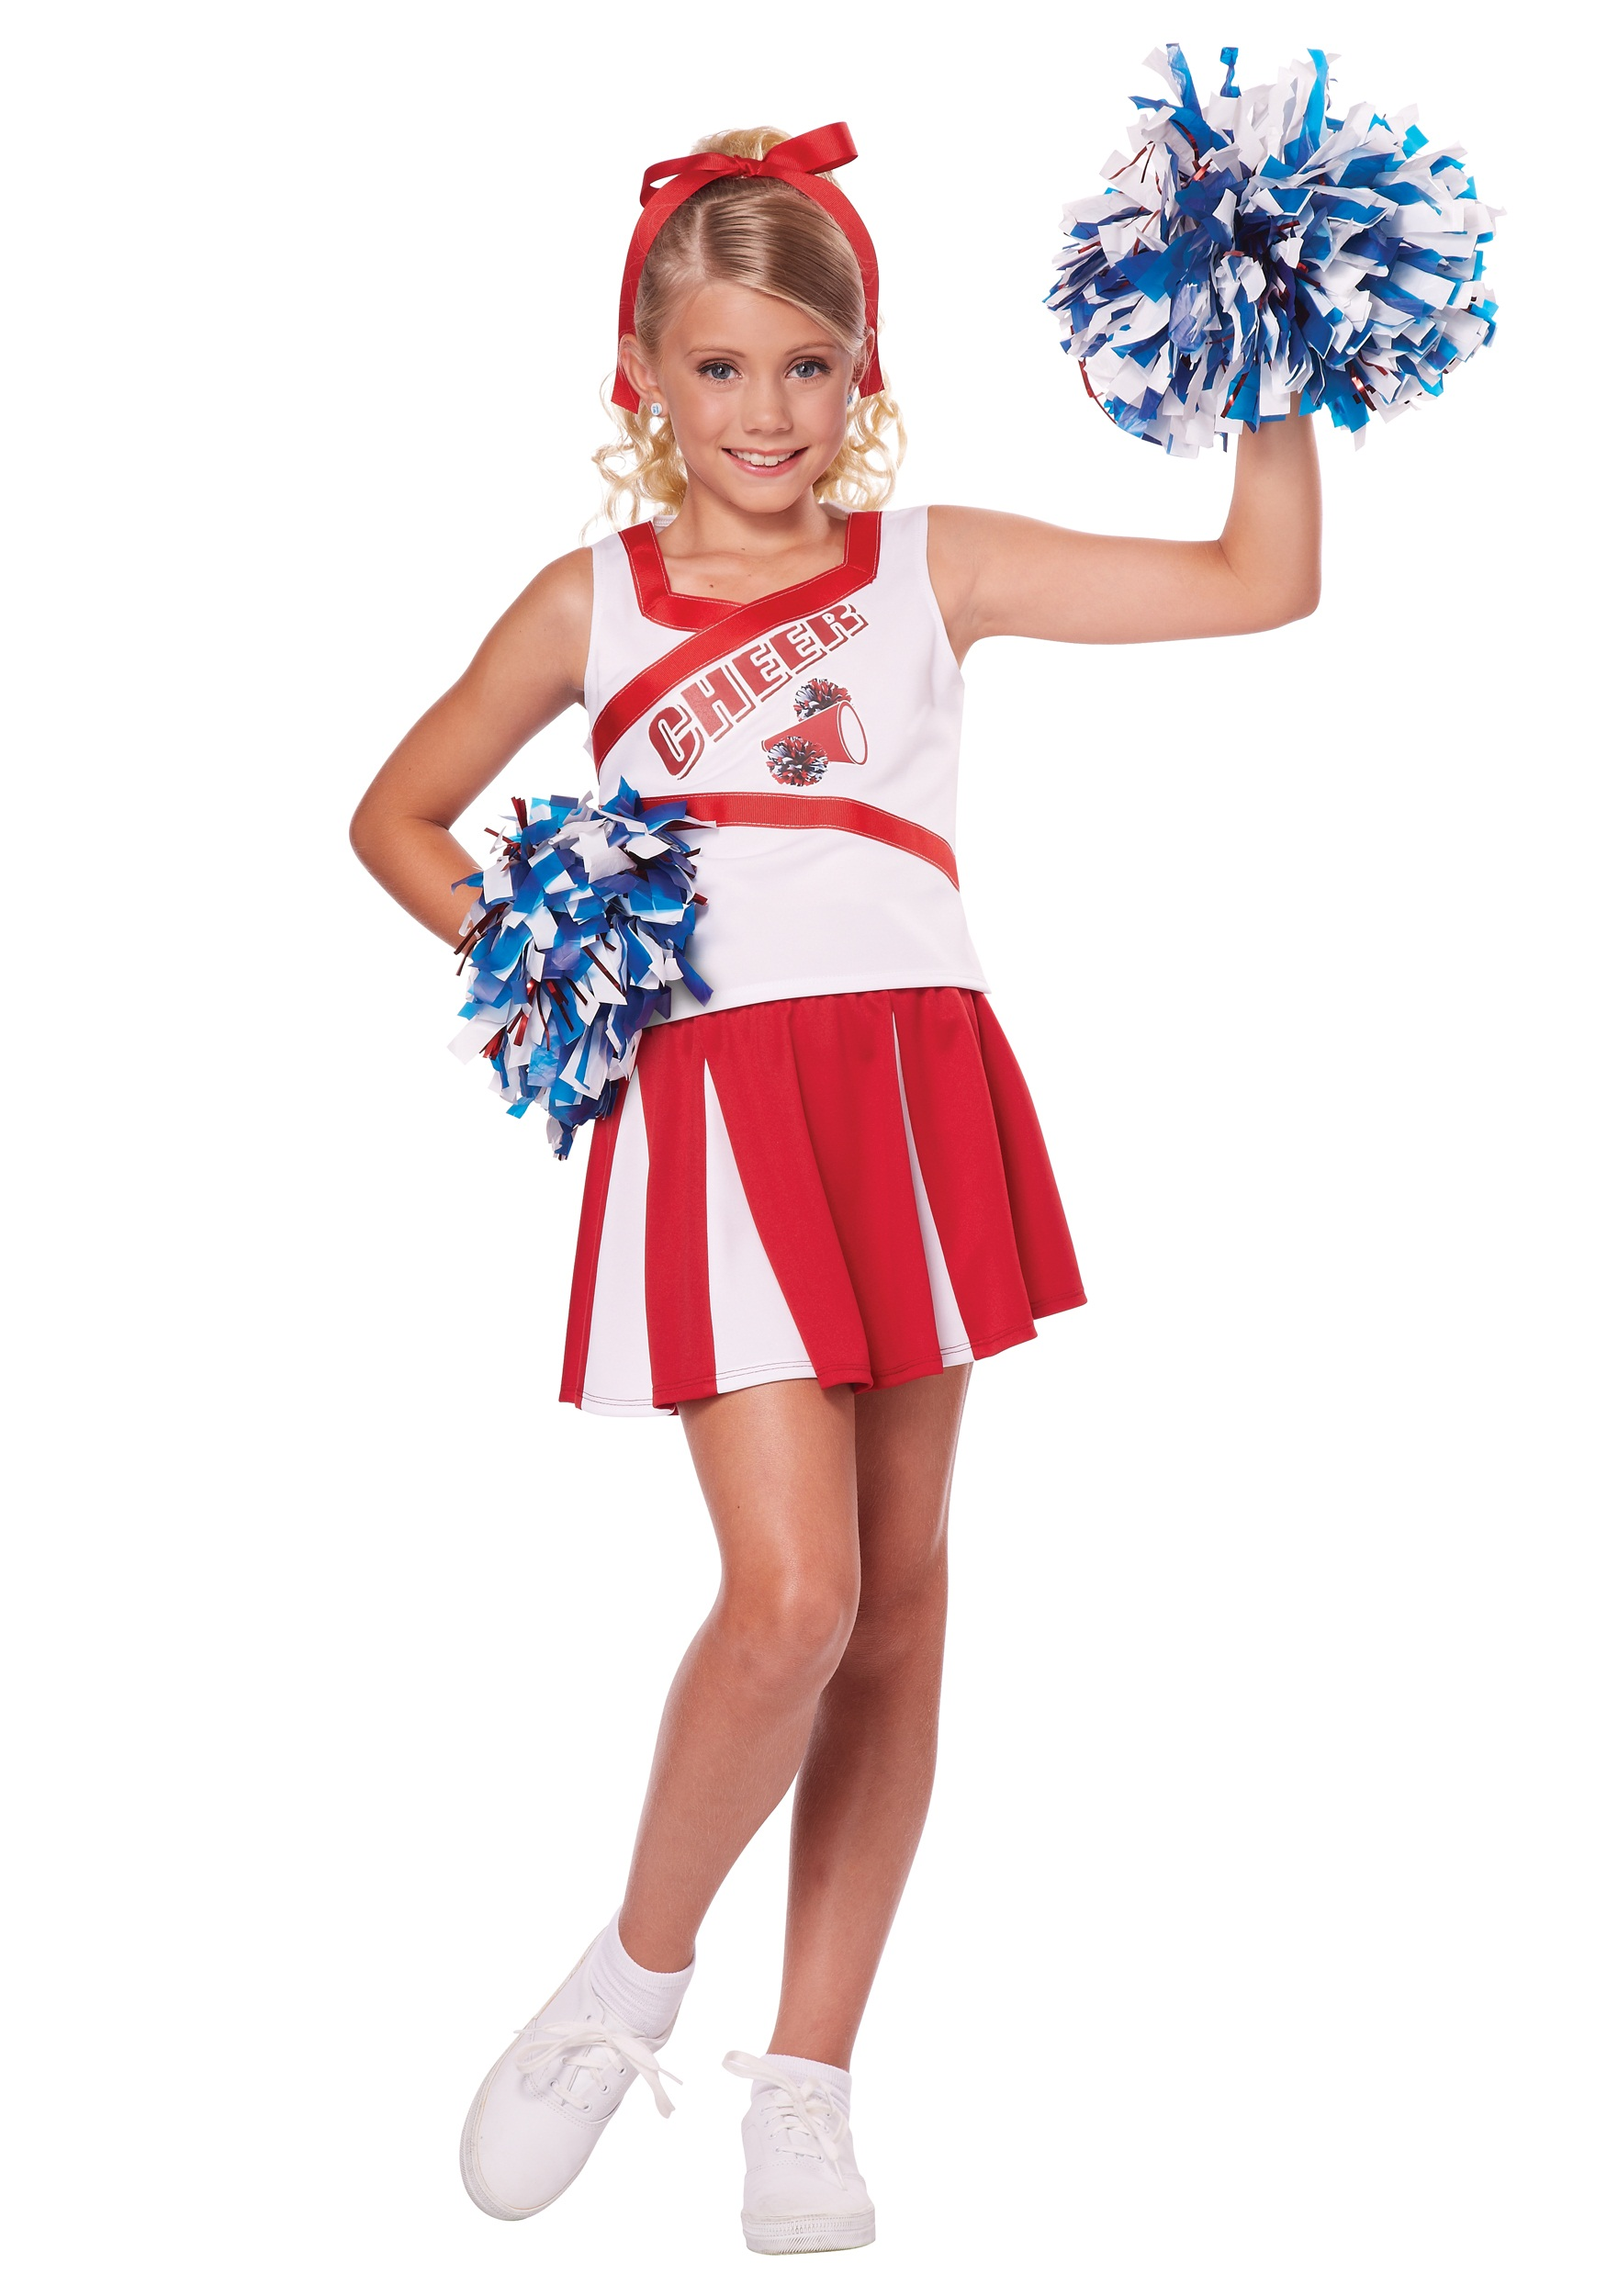 42d8ec9046fb child-high-school-cheerleader-costume.jpg